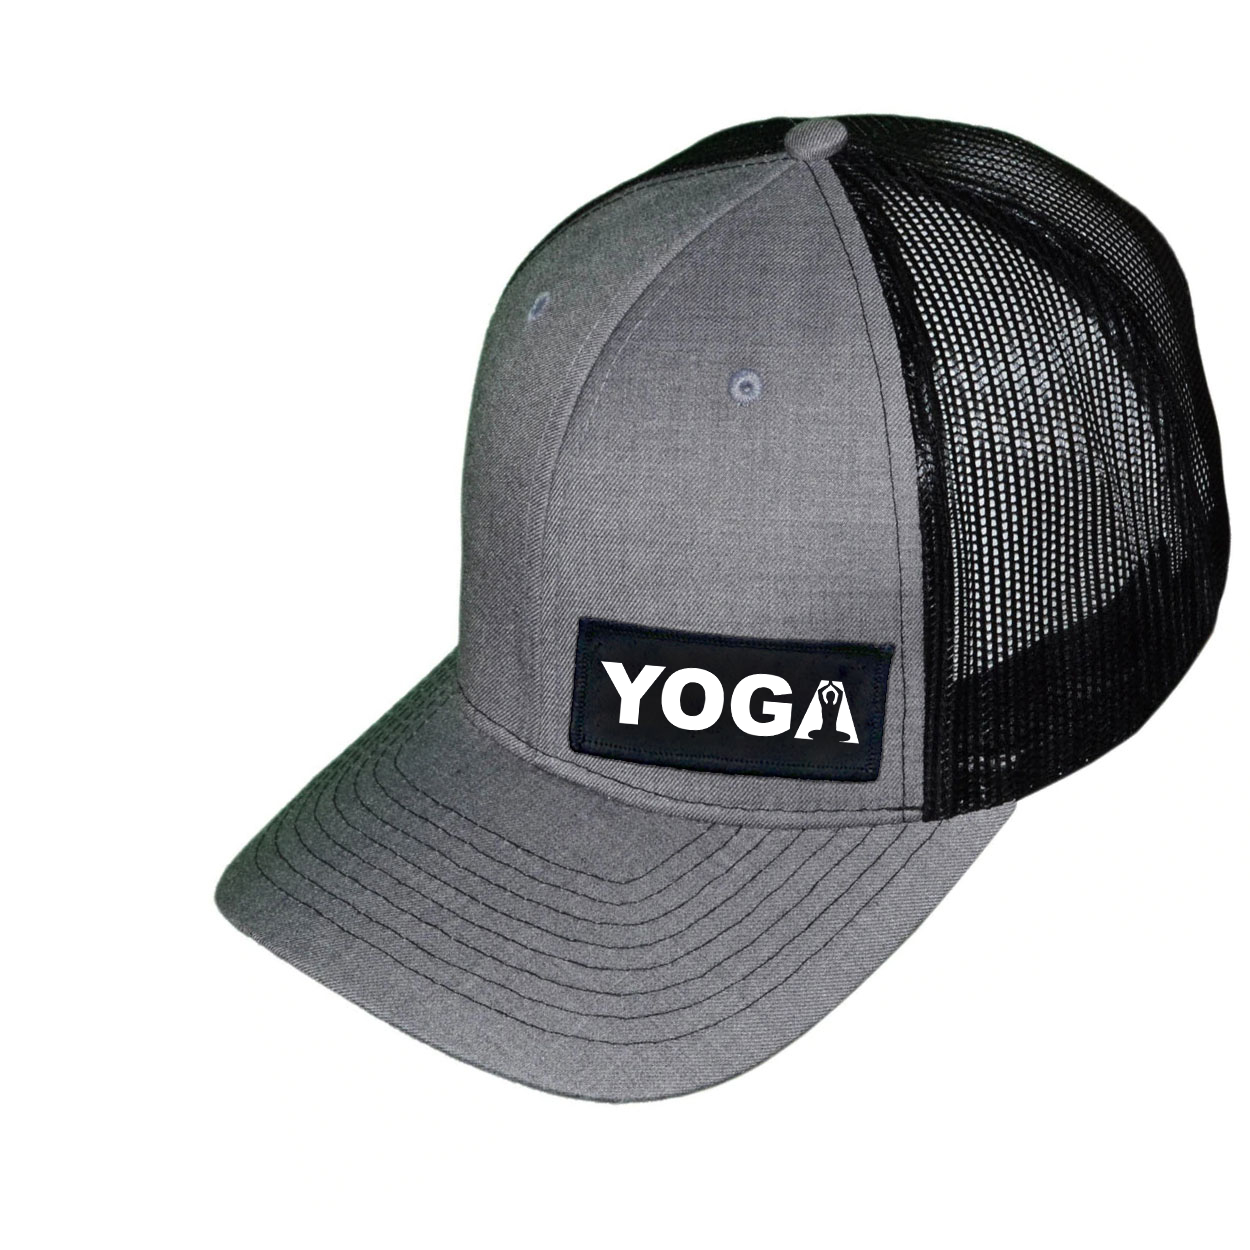 Yoga Meditation Logo Night Out Woven Patch Snapback Trucker Hat Heather Gray/Black (White Logo)